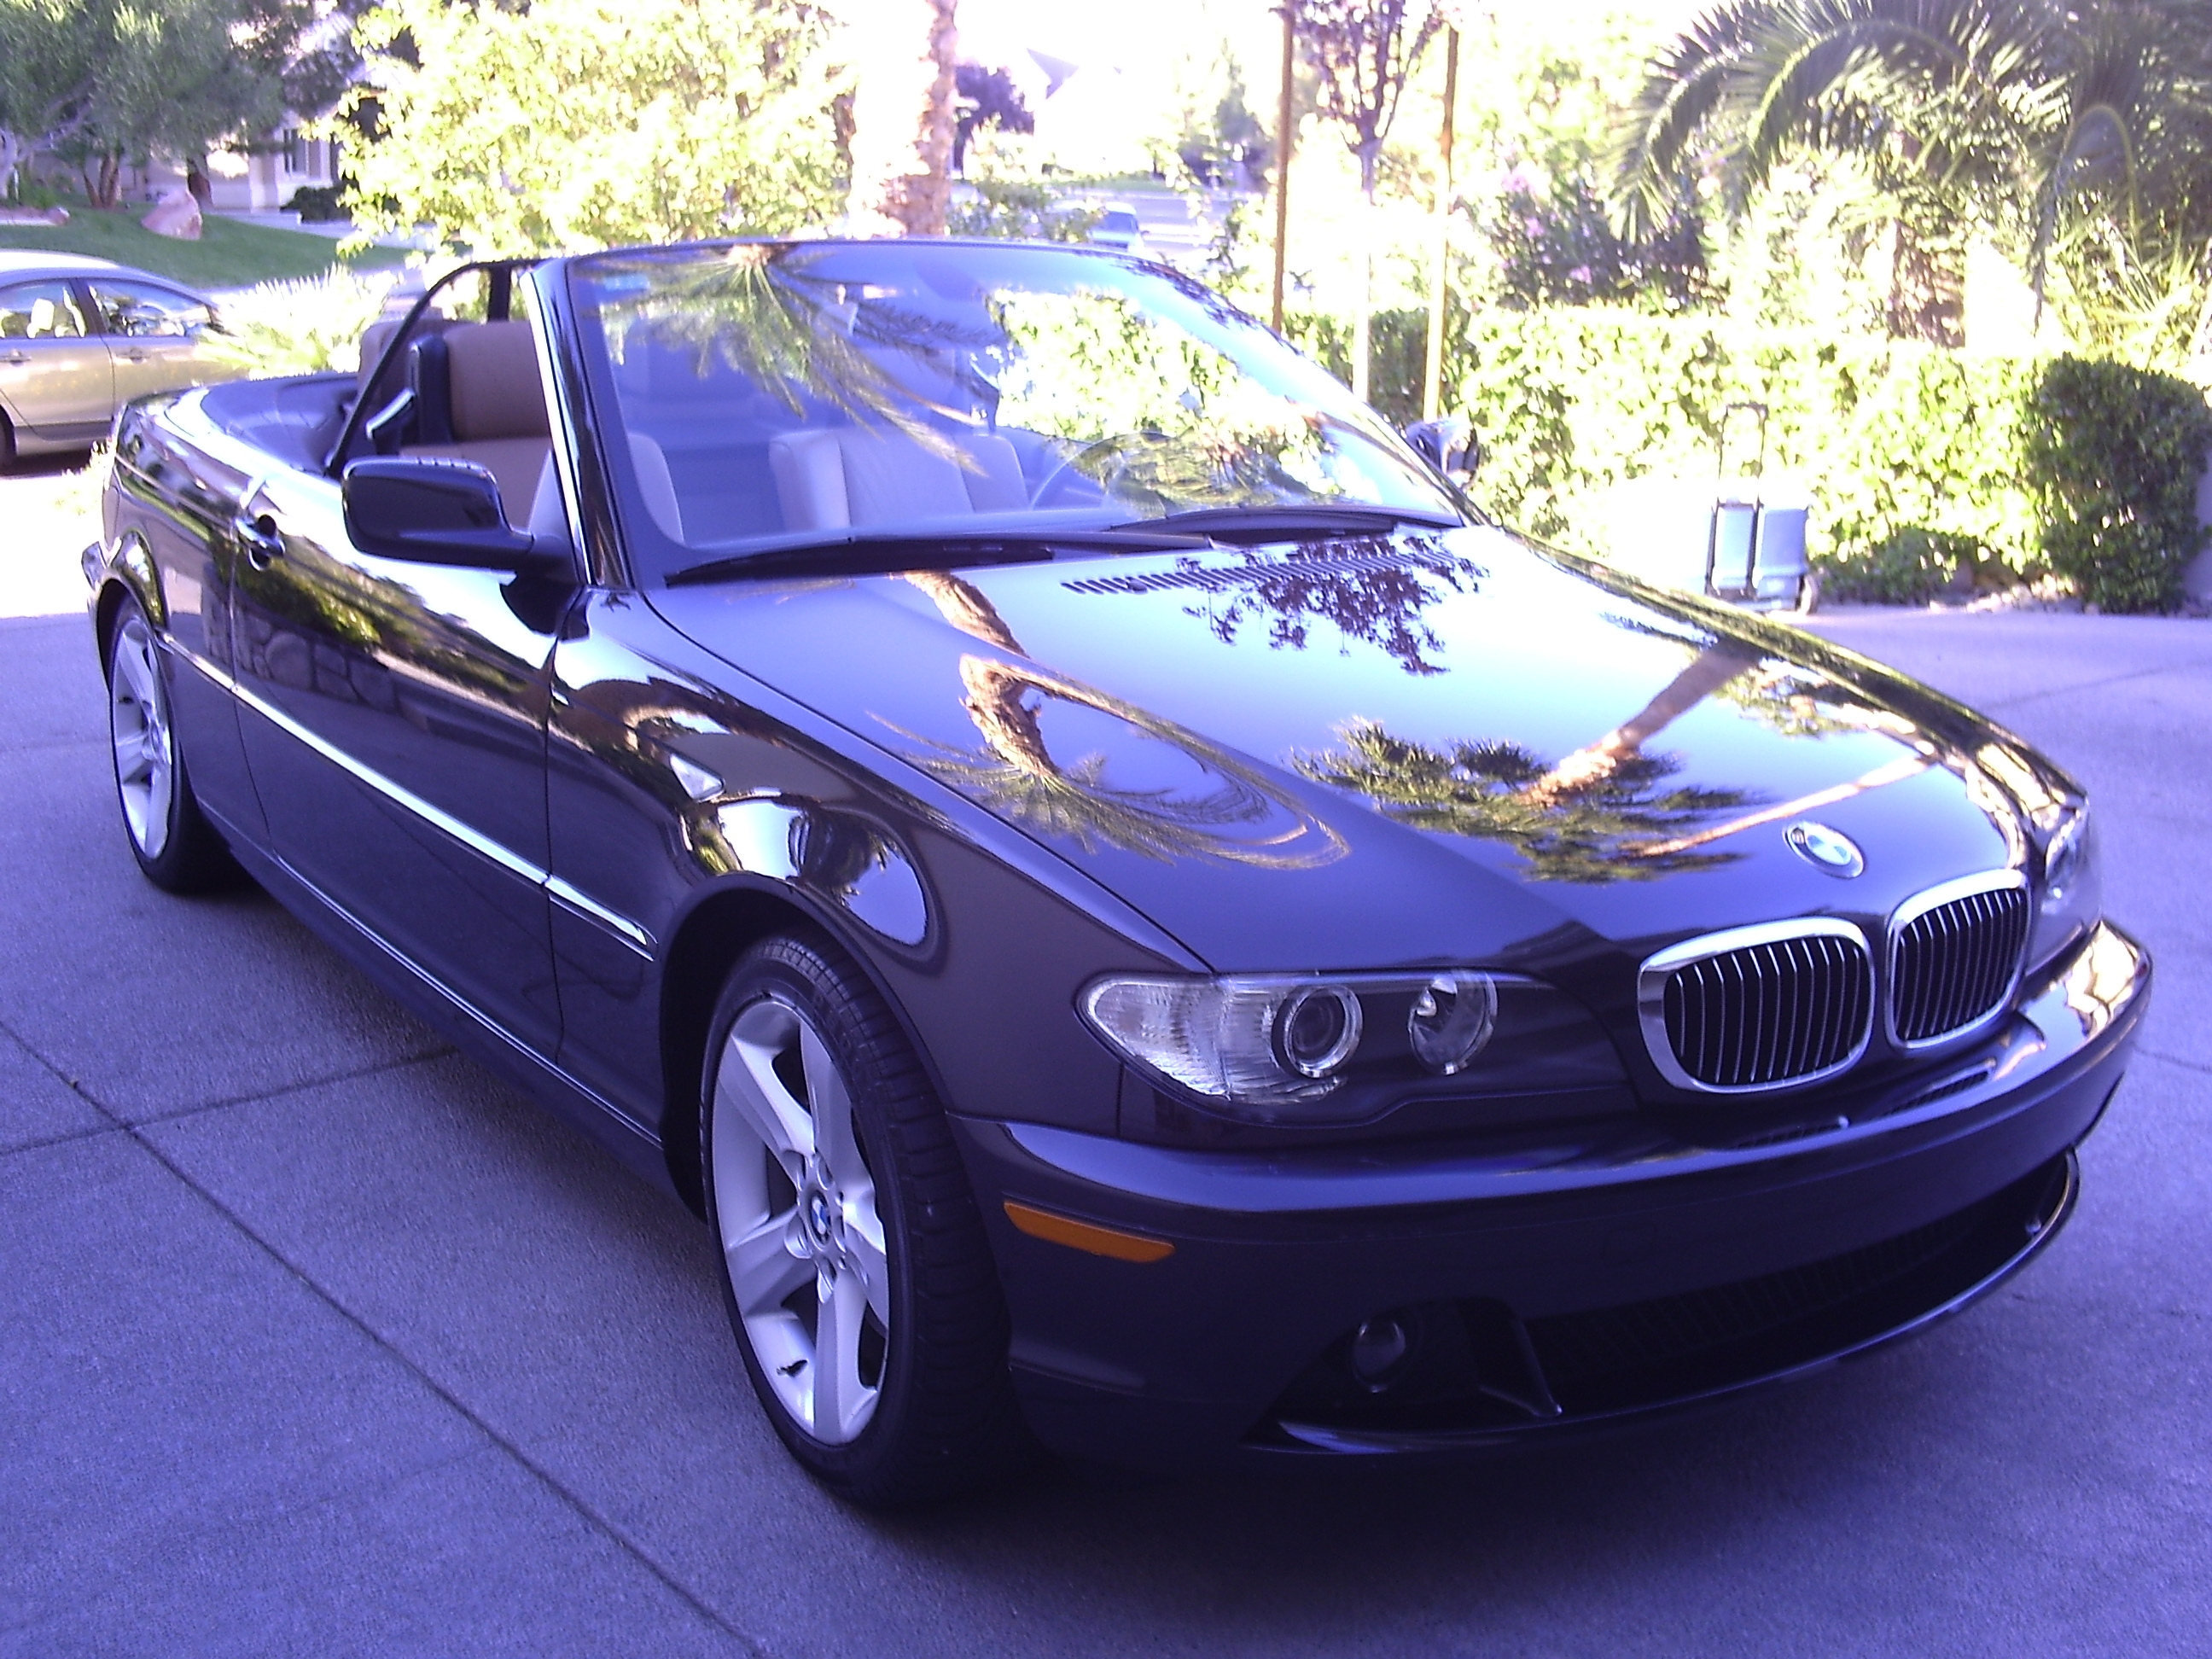 Used BMW I Convertible LAS VEGAS BLACK BEAUTY MYCARLADY - 325i bmw convertible